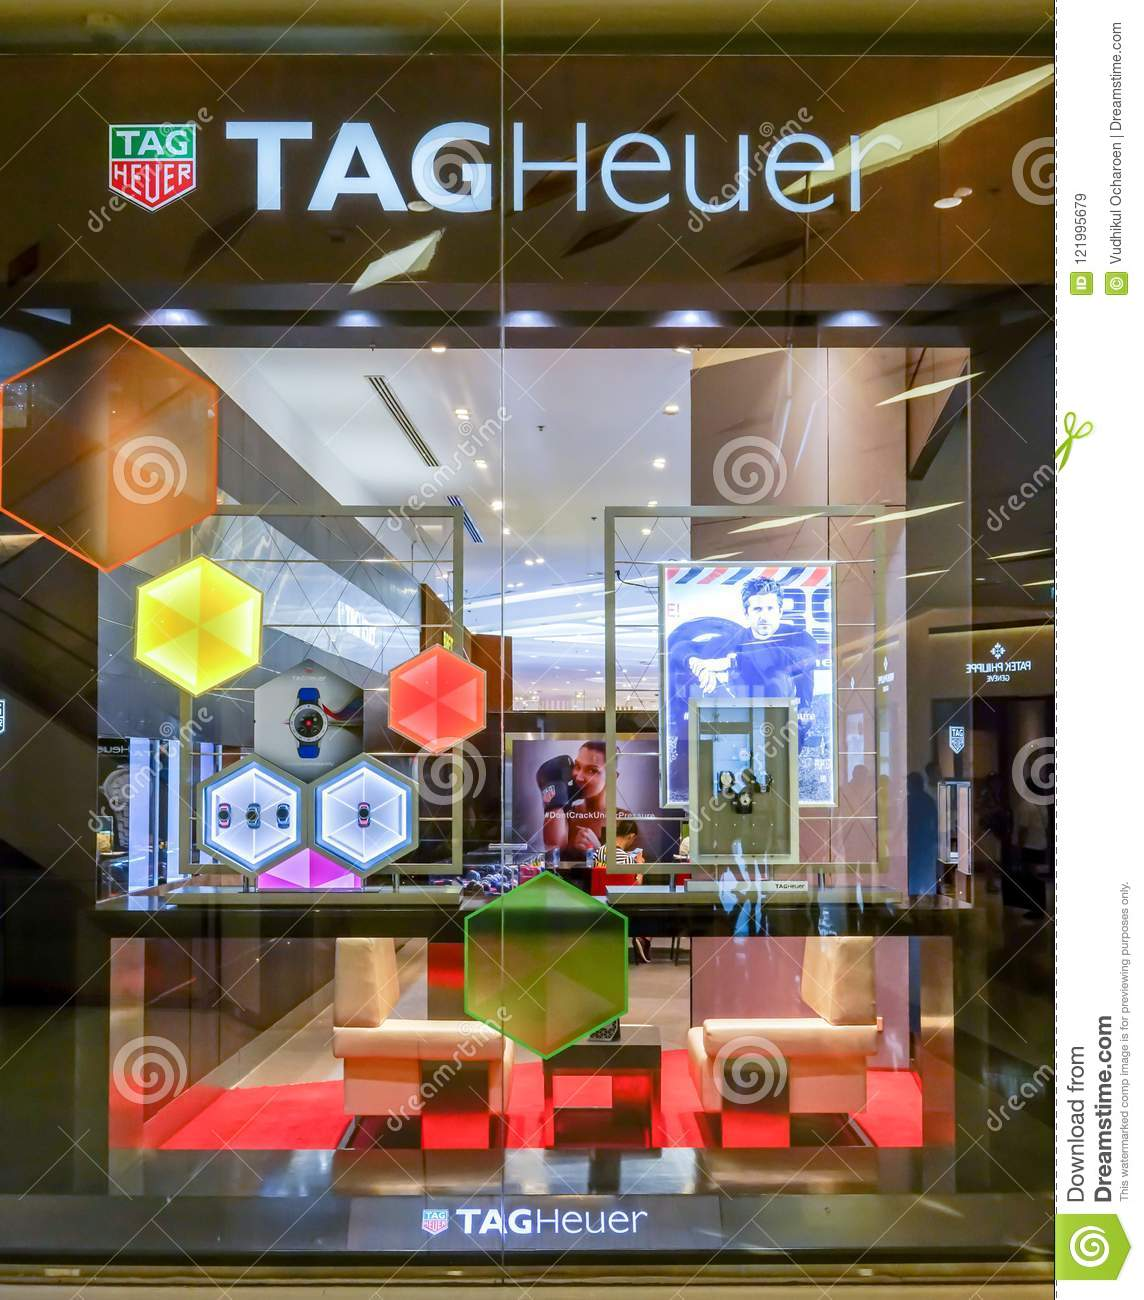 3b7252629c1 TAG Heuer shop at Siam Paragon, Bangkok, Thailand, Mar 9, 2018 : World  famous watch brand. Window display against perspective background at the  store.